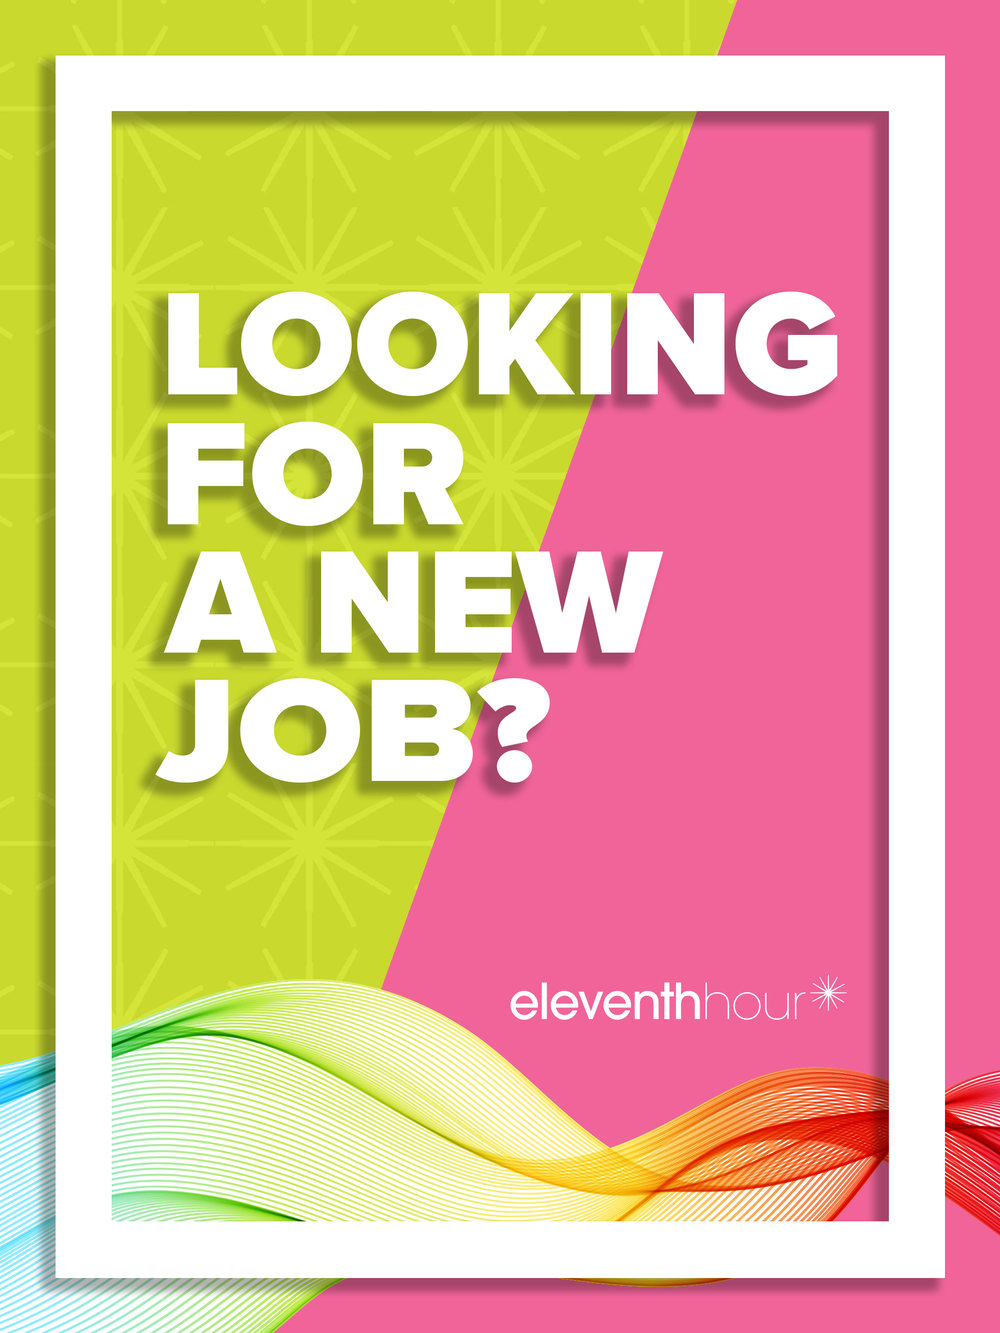 Looking_for_a_New_Job-posterV2.jpg